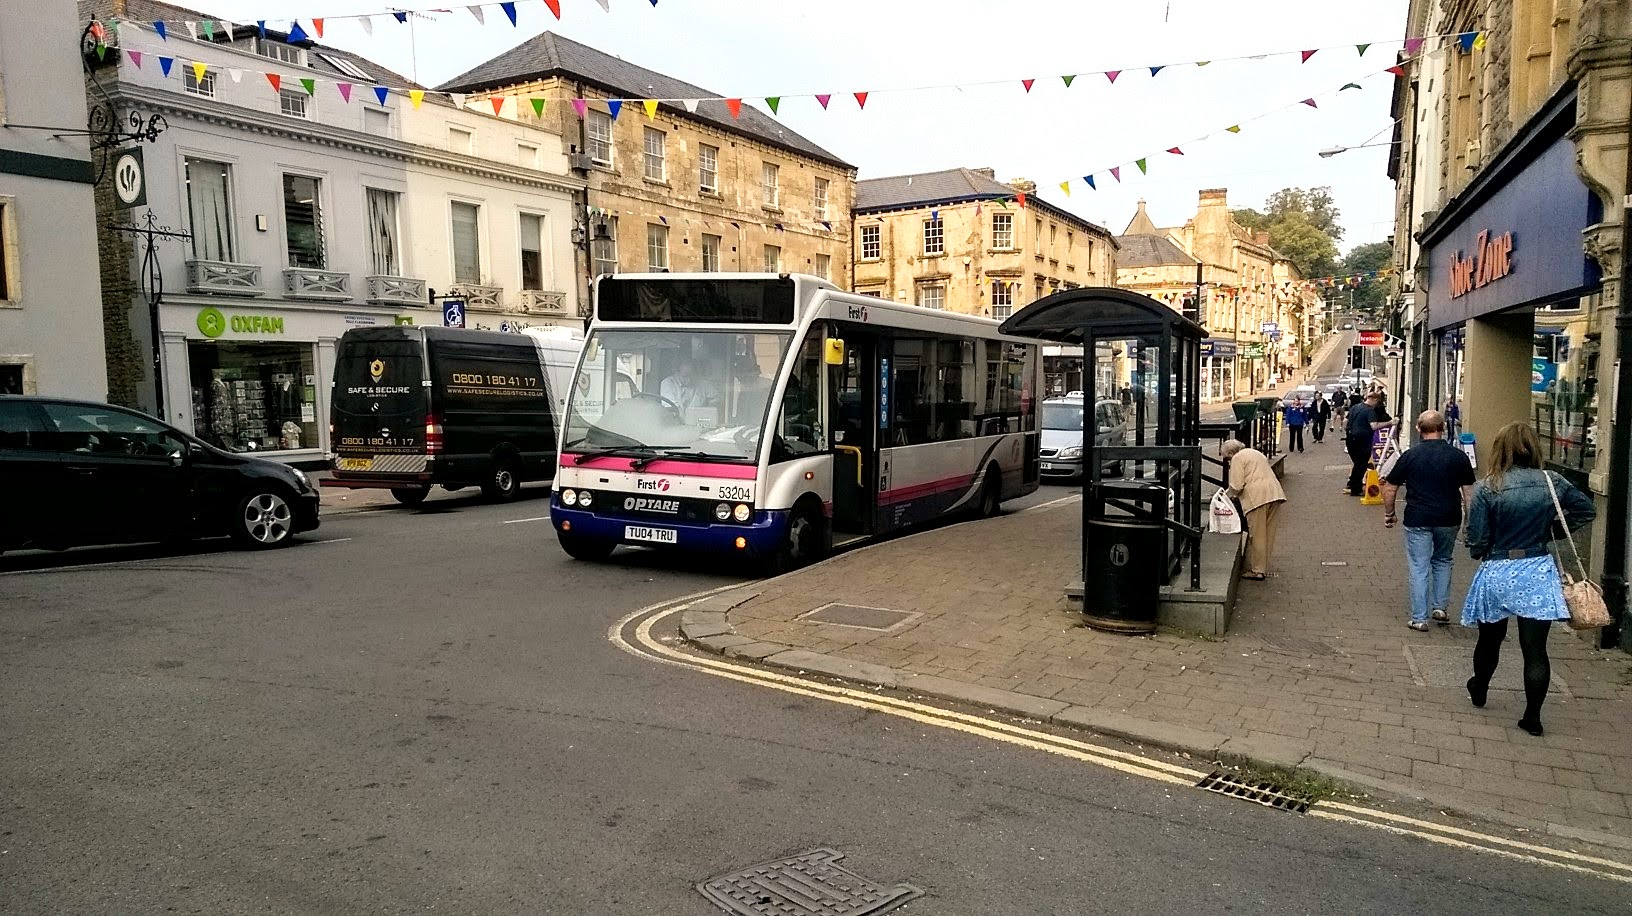 To see how much public transport is available in Frome, look no further than the always busy Market Place Bus Station in the town centre